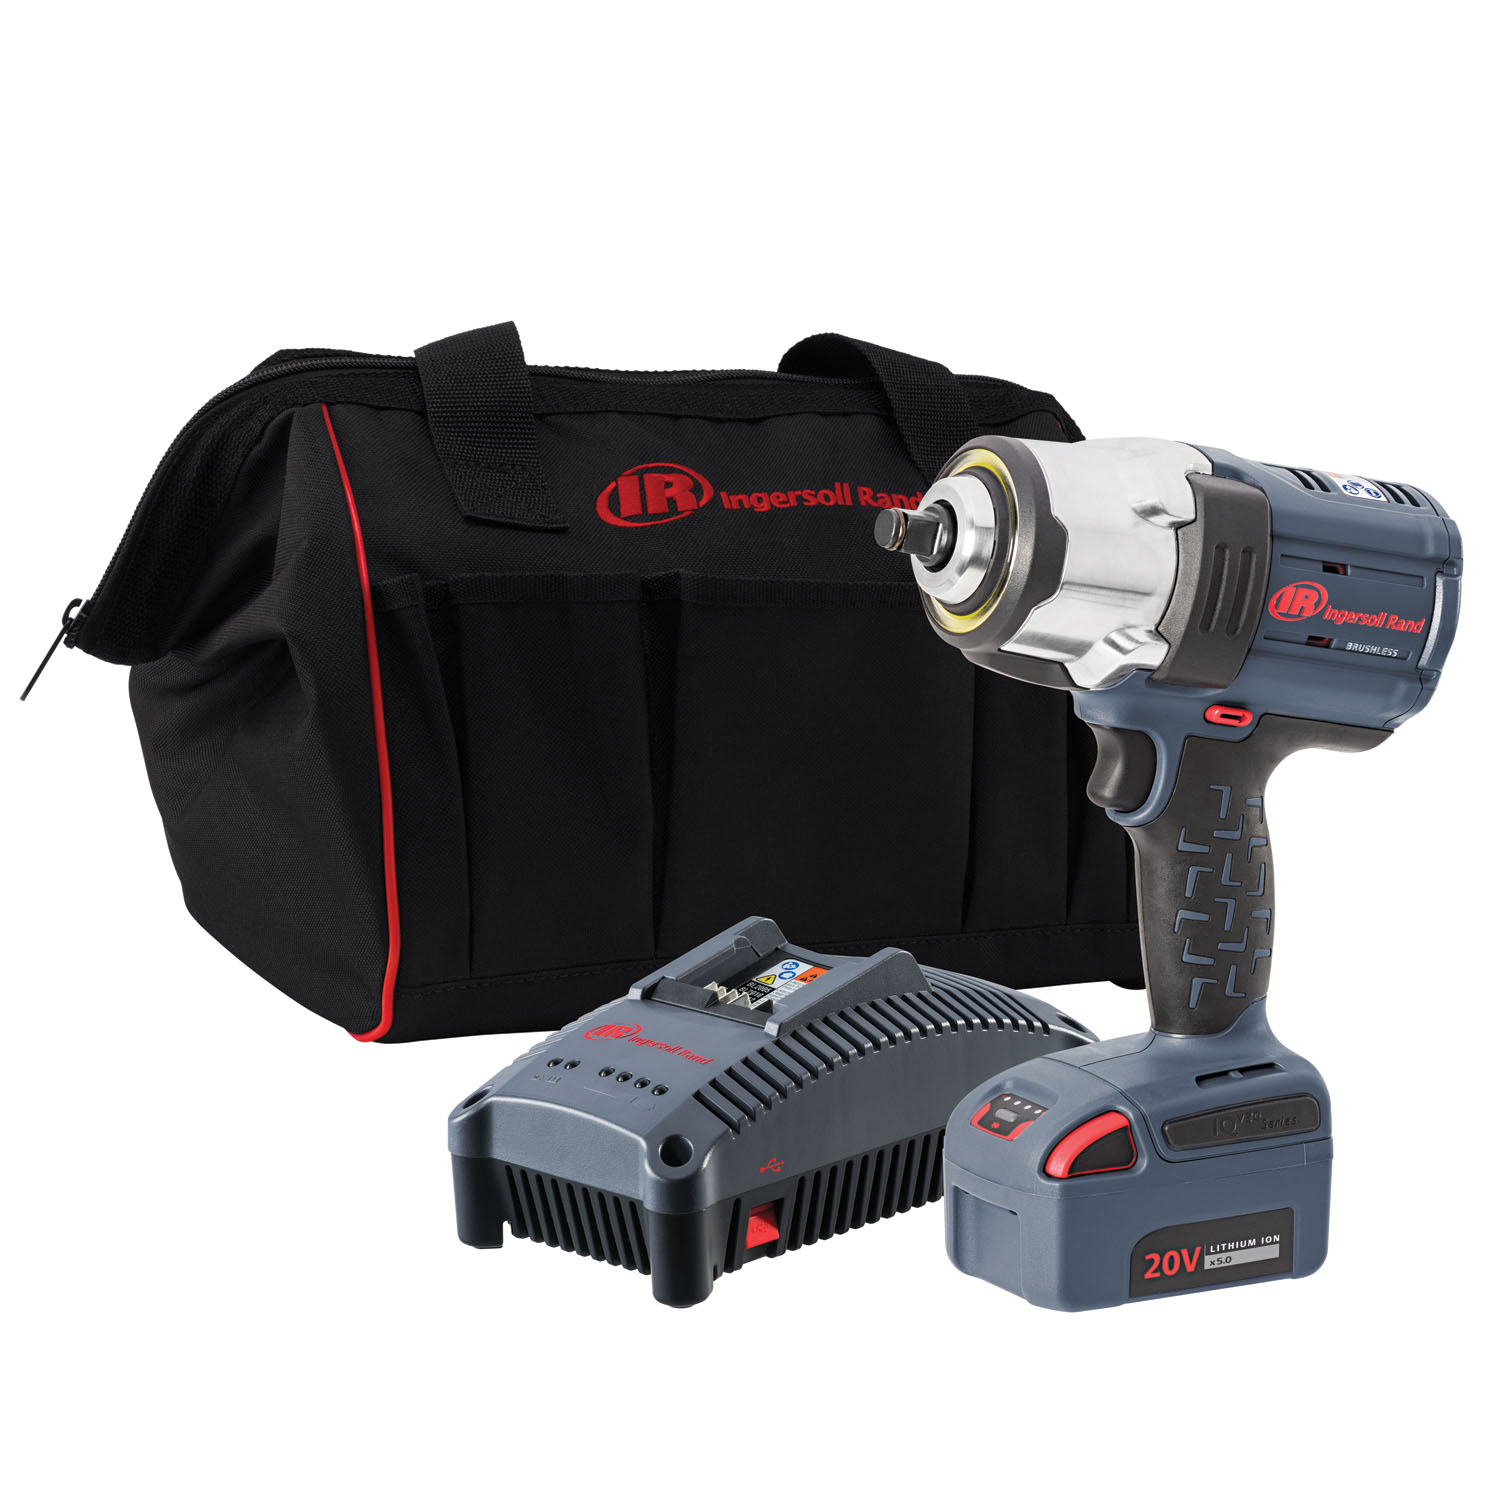 "Ingersoll Rand W7152-K12 1 2"" Drive Iqv20 Hd Impact Wrench One Battery Kit by Ingersoll Rand"